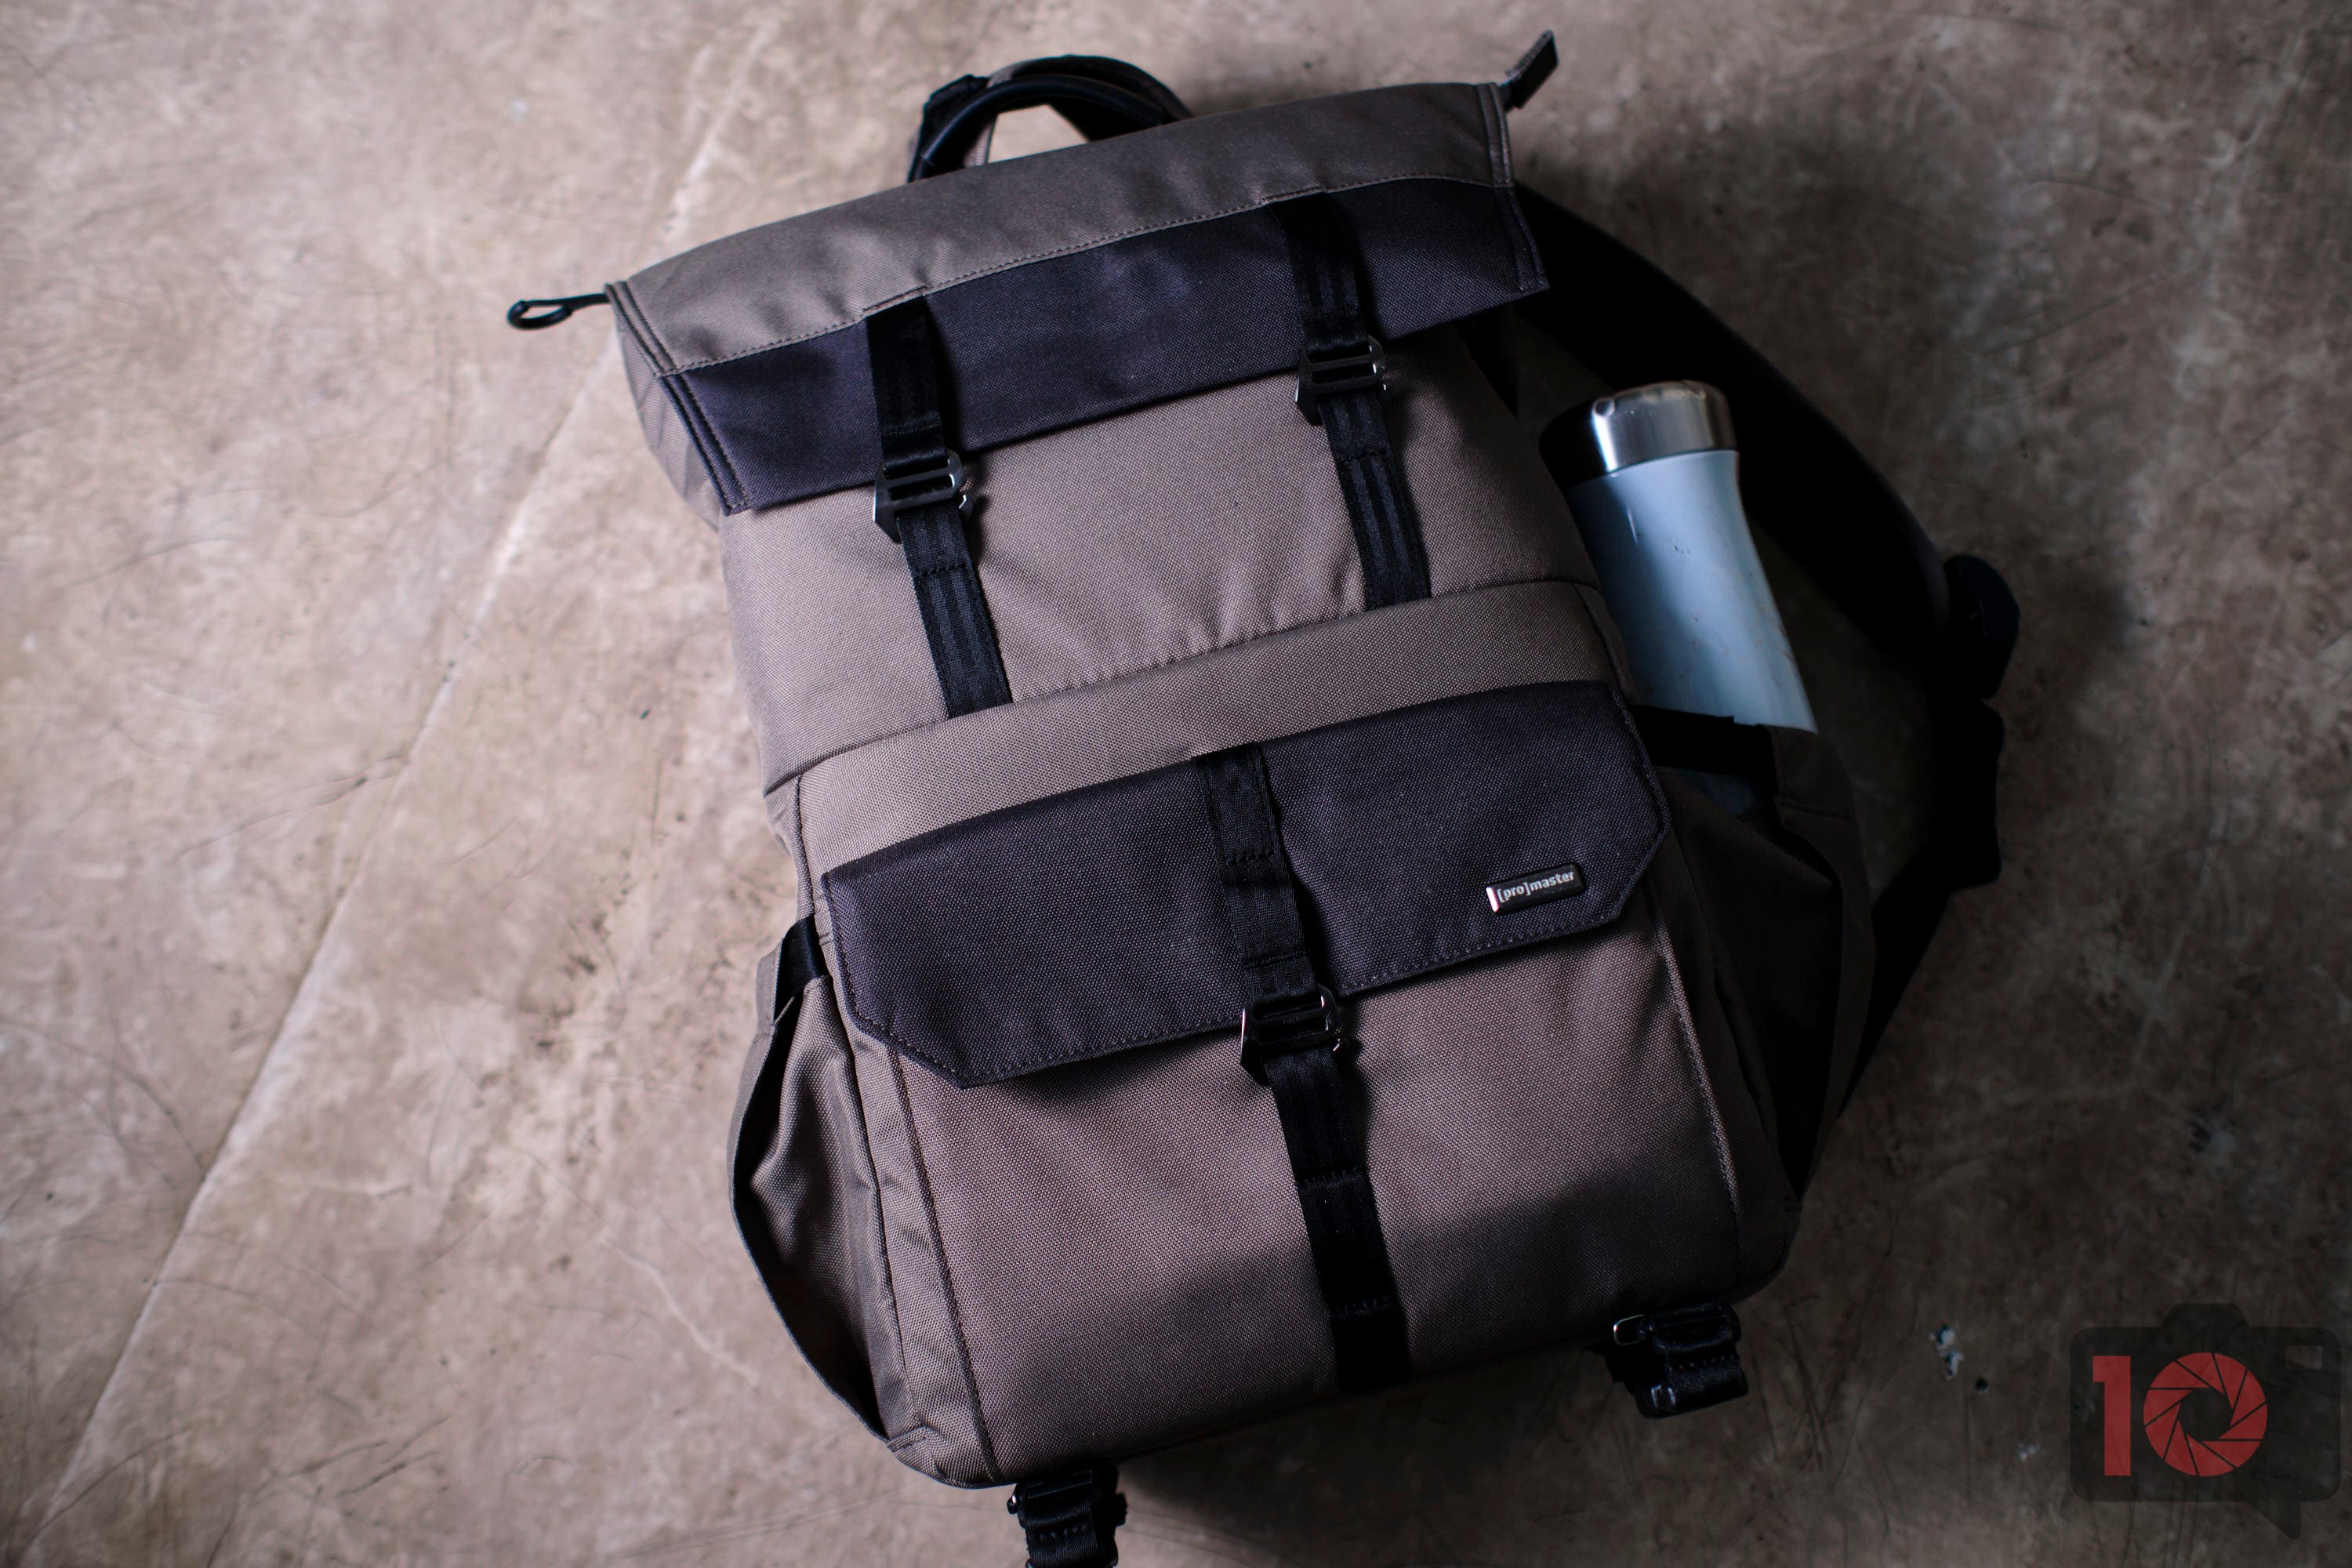 $150 or Less: 5 Stylish Camera Bags That Will Make Great Gifts